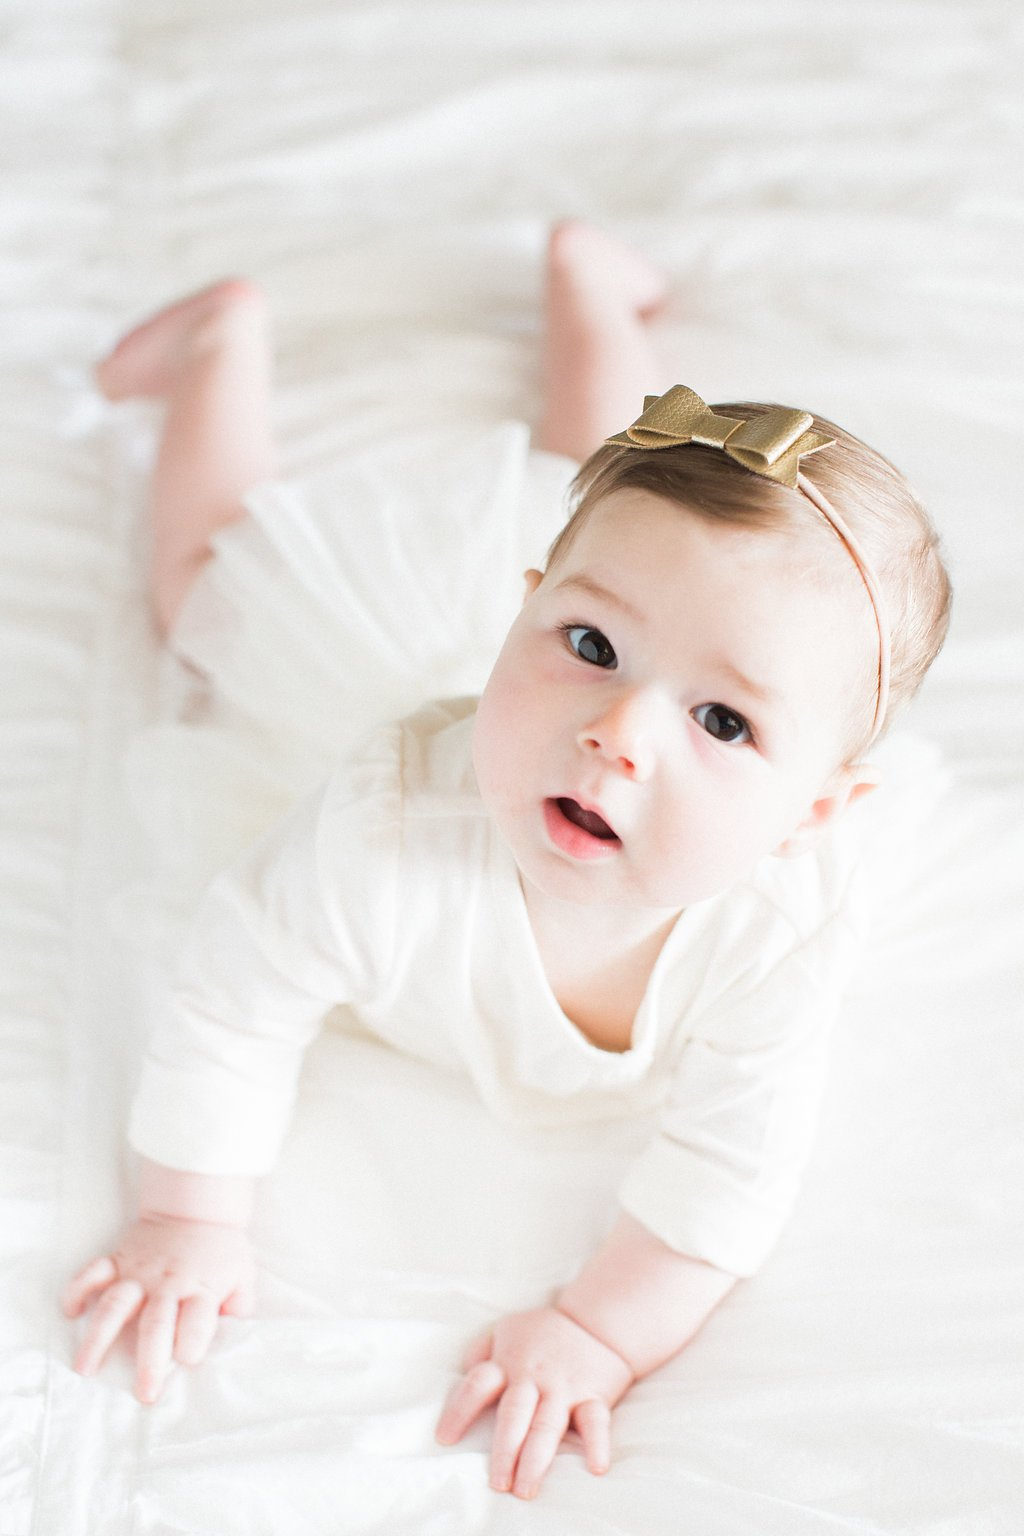 Photo of baby lying on a bed in a white dress with a gold bow in her hair